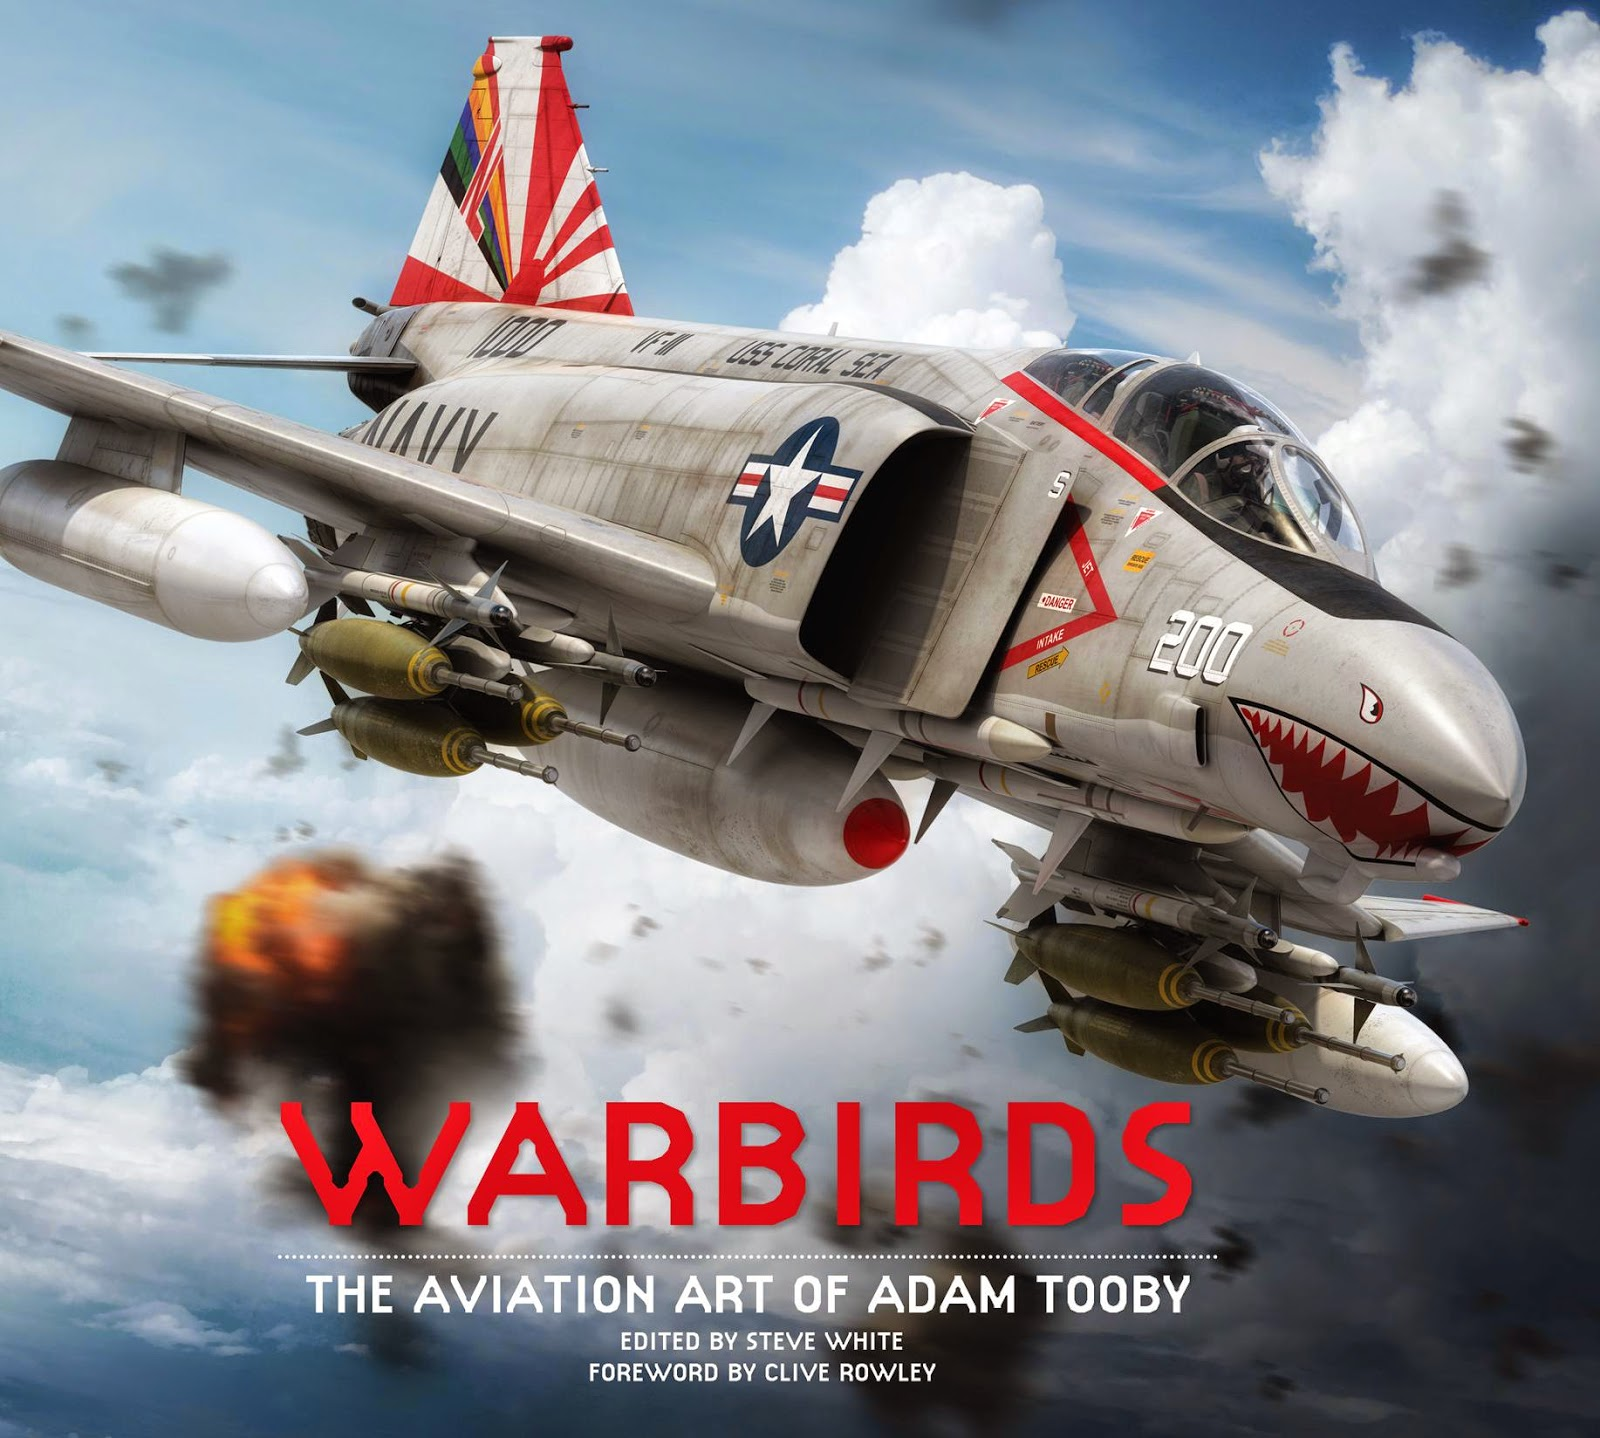 Warbirds  The Aviation Art of Adam Tooby